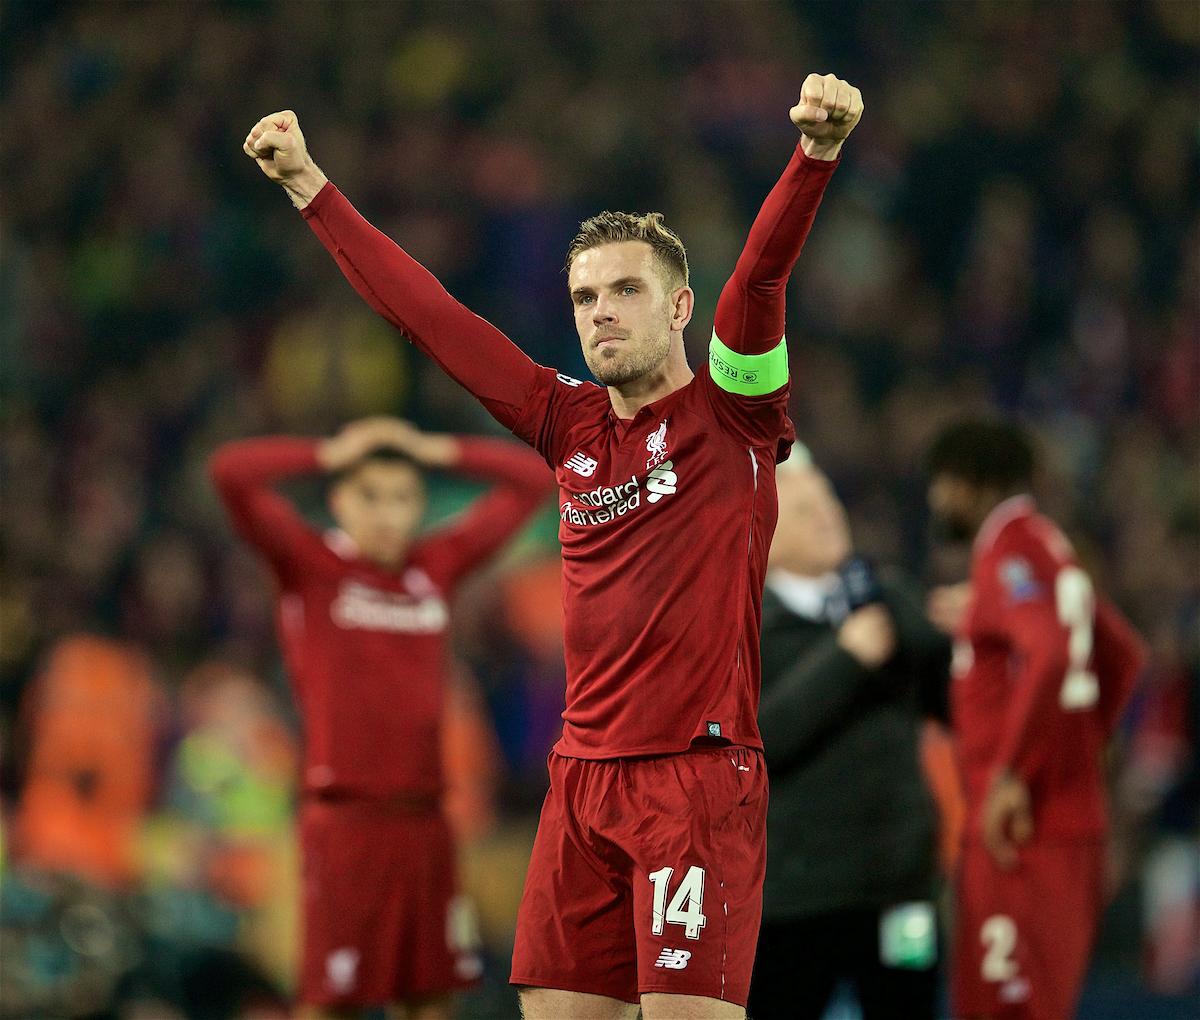 LIVERPOOL, ENGLAND - Tuesday, May 7, 2019: Liverpool's captain Jordan Henderson celebrates the 4-0 victory (4-3 on aggregate) over FC Barcelona after the UEFA Champions League Semi-Final 2nd Leg match between Liverpool FC and FC Barcelona at Anfield. (Pic by David Rawcliffe/Propaganda)